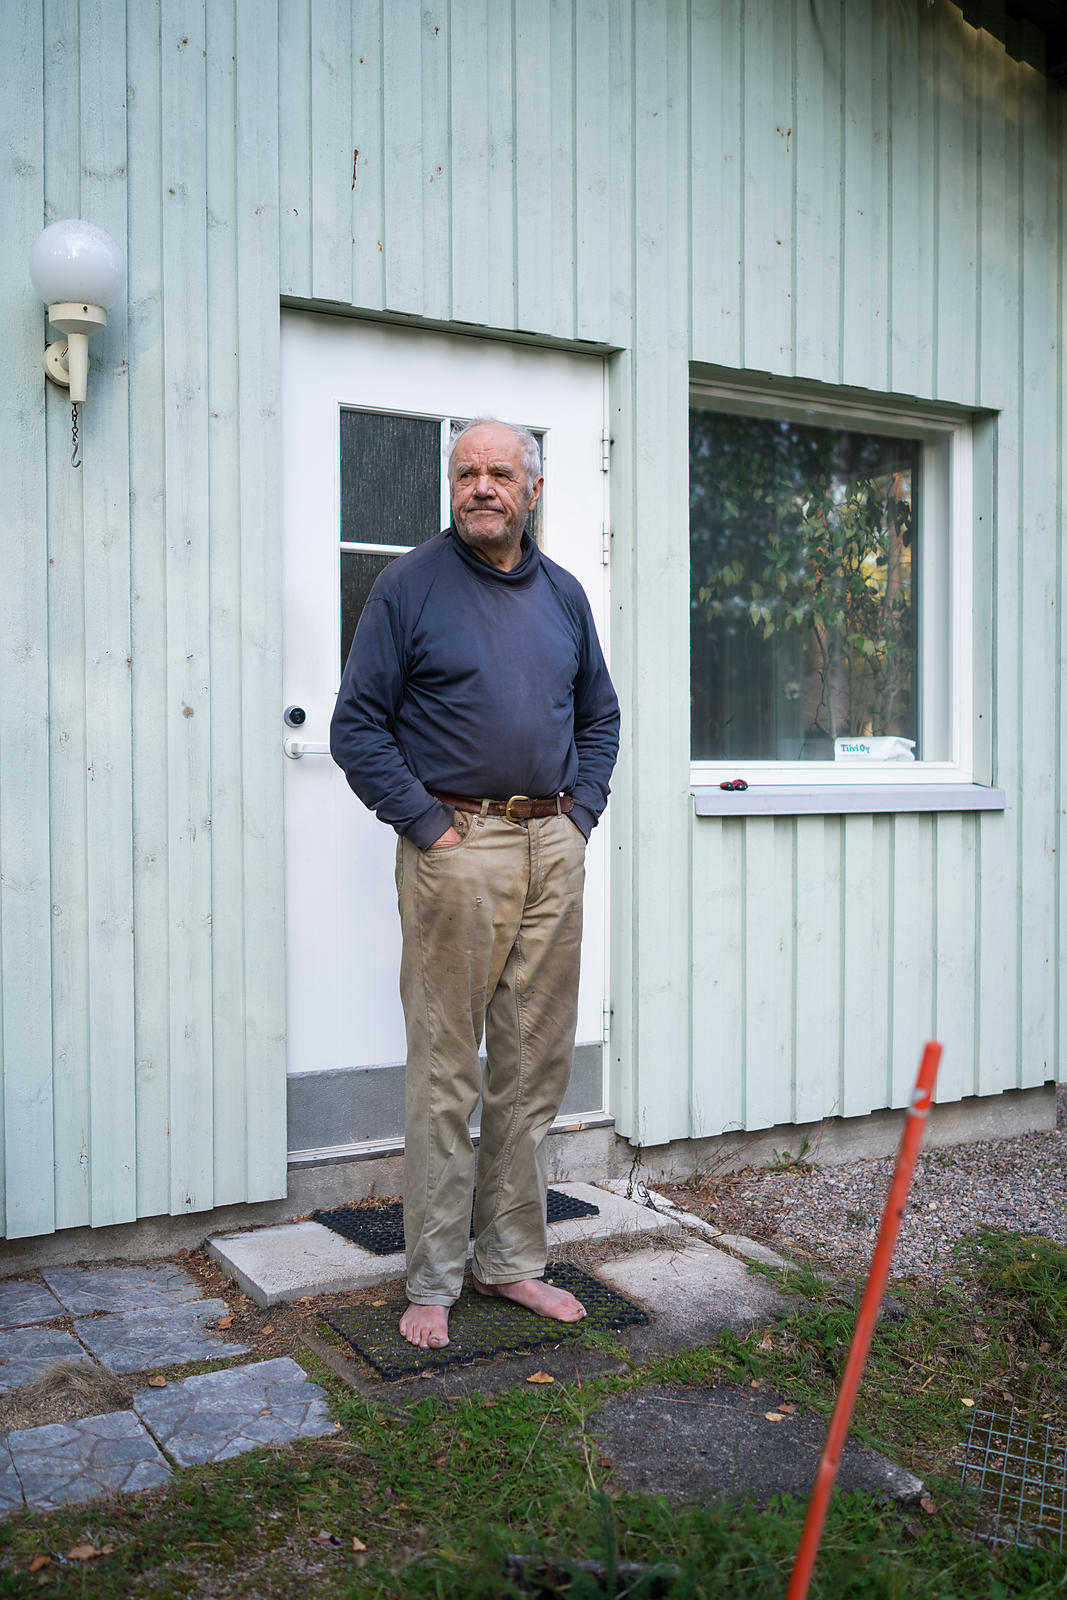 Pensioner Olavi Toivola in front of his sel-designed and built home in Petäjävesi.